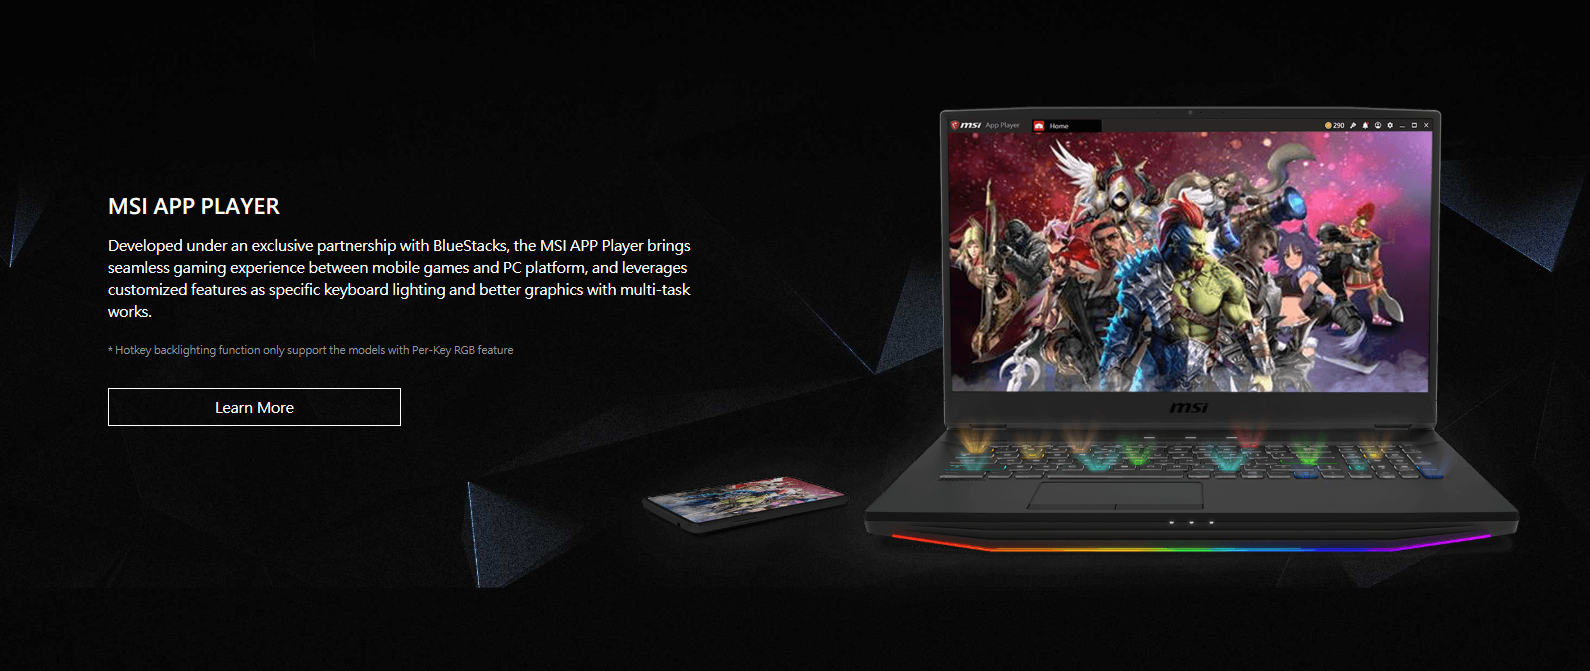 Developed under an exclusive partnership with BlueStacks, the MSI APP Player brings seamless gaming experience between mobile games and PC platform, and leverages customized features as specific keyboard lighting and better graphics with multi-task works.